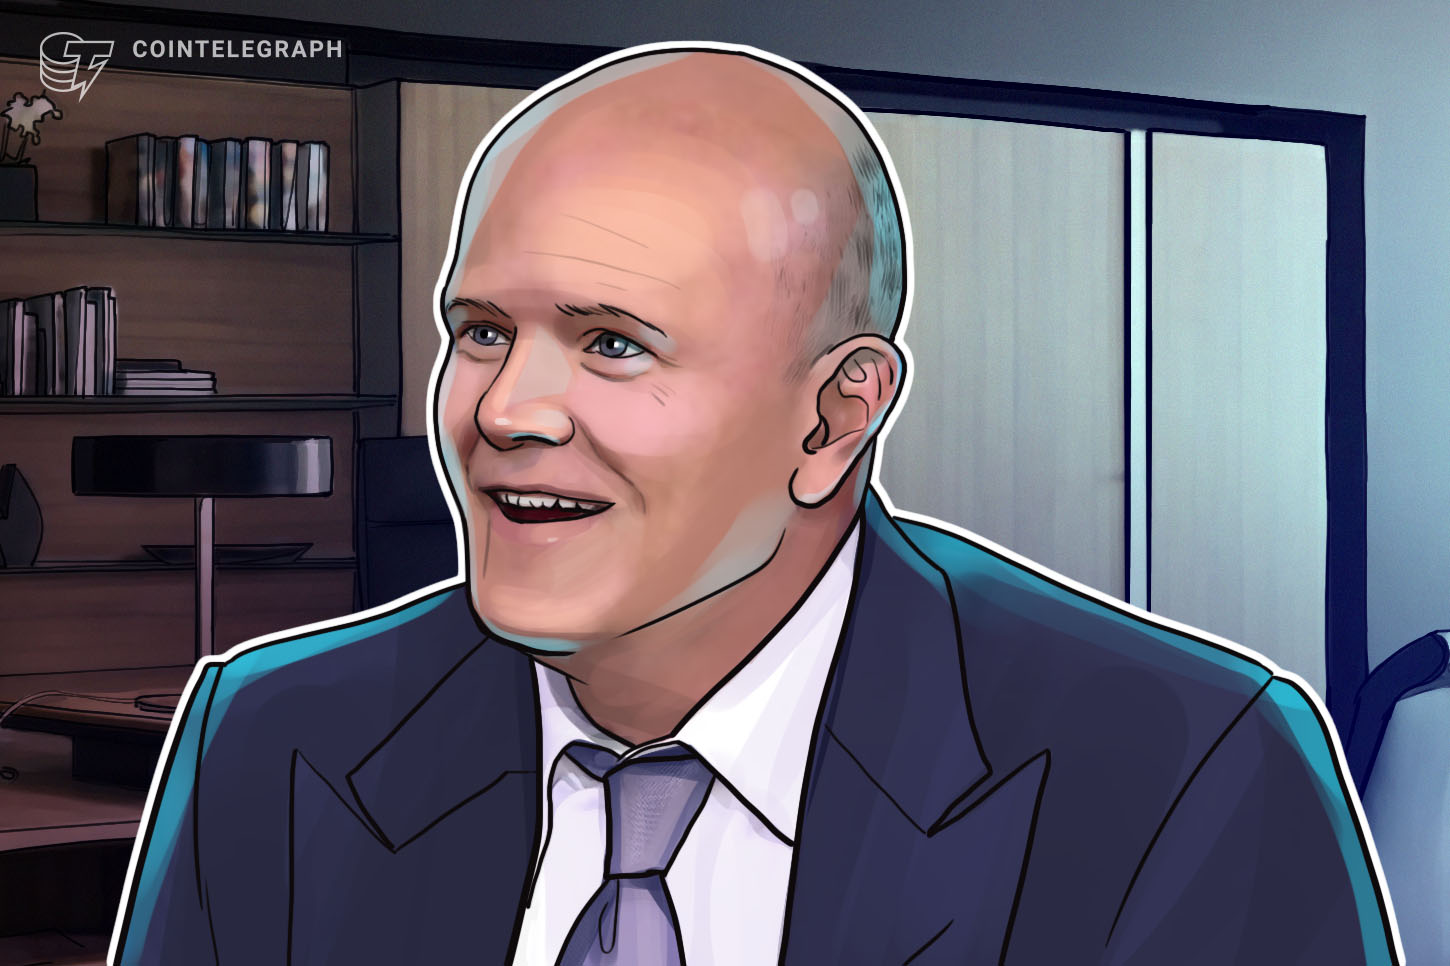 Mike Novogratz blasts US officials for poor grasp over crypto industry